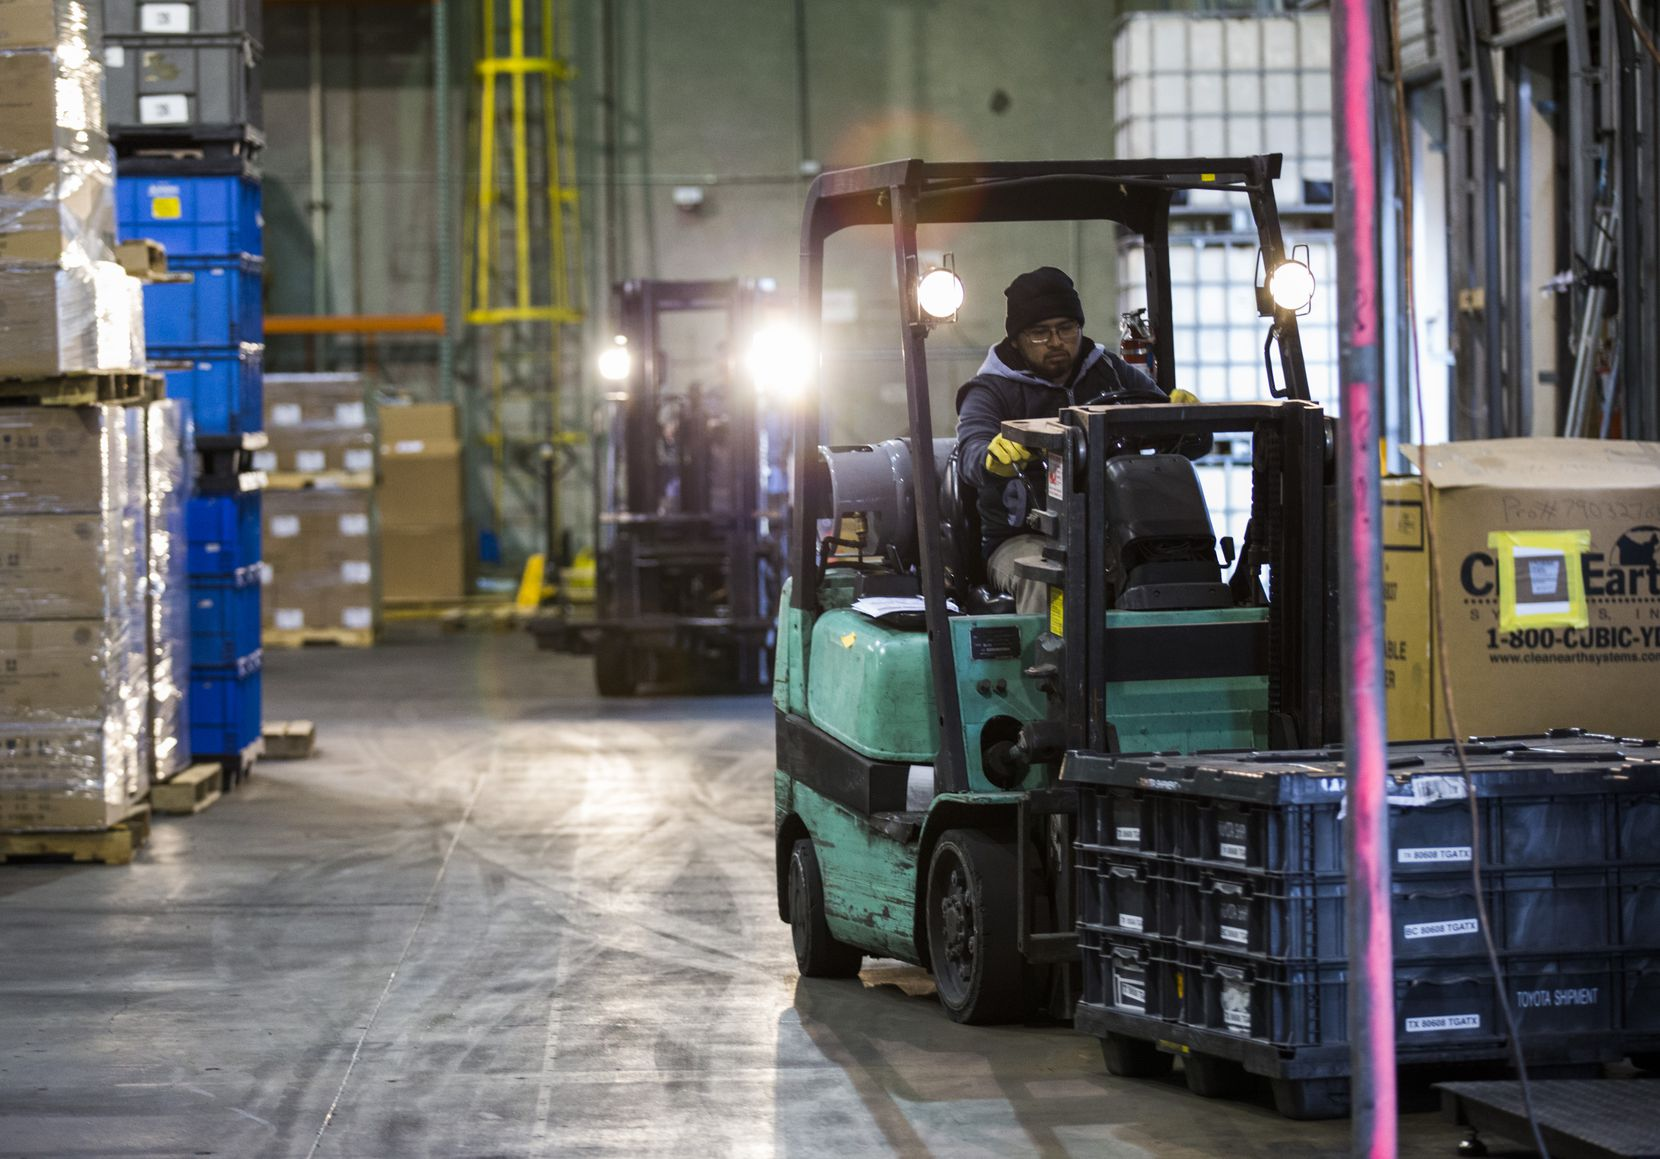 Francisco Garza drives a forklift through the Bespoke-Logistics warehouse in January, 2018 in McAllen, Texas. The warehouse acts as a mid-point for shipments going to and from the U.S. and Mexico.